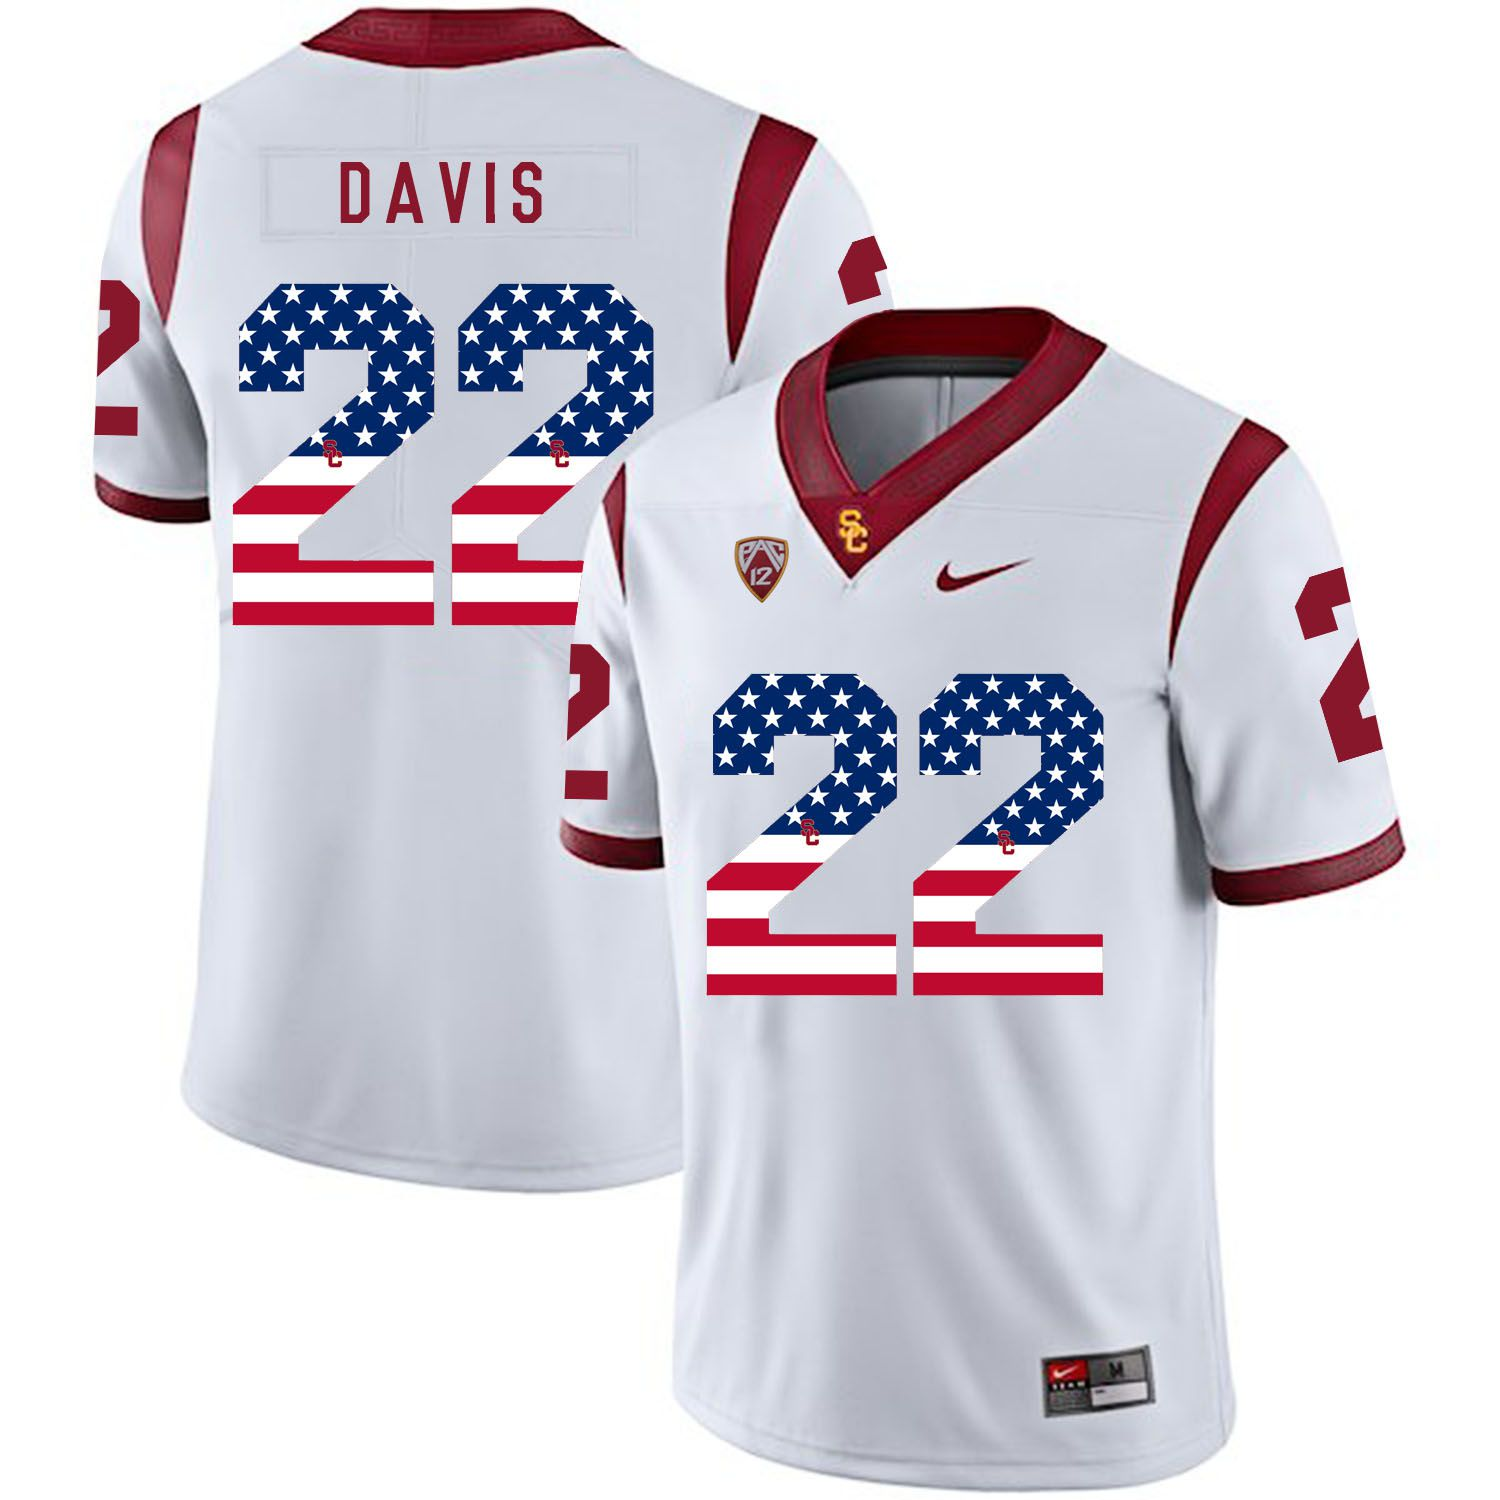 Men USC Trojans 22 Davis White Flag Customized NCAA Jerseys